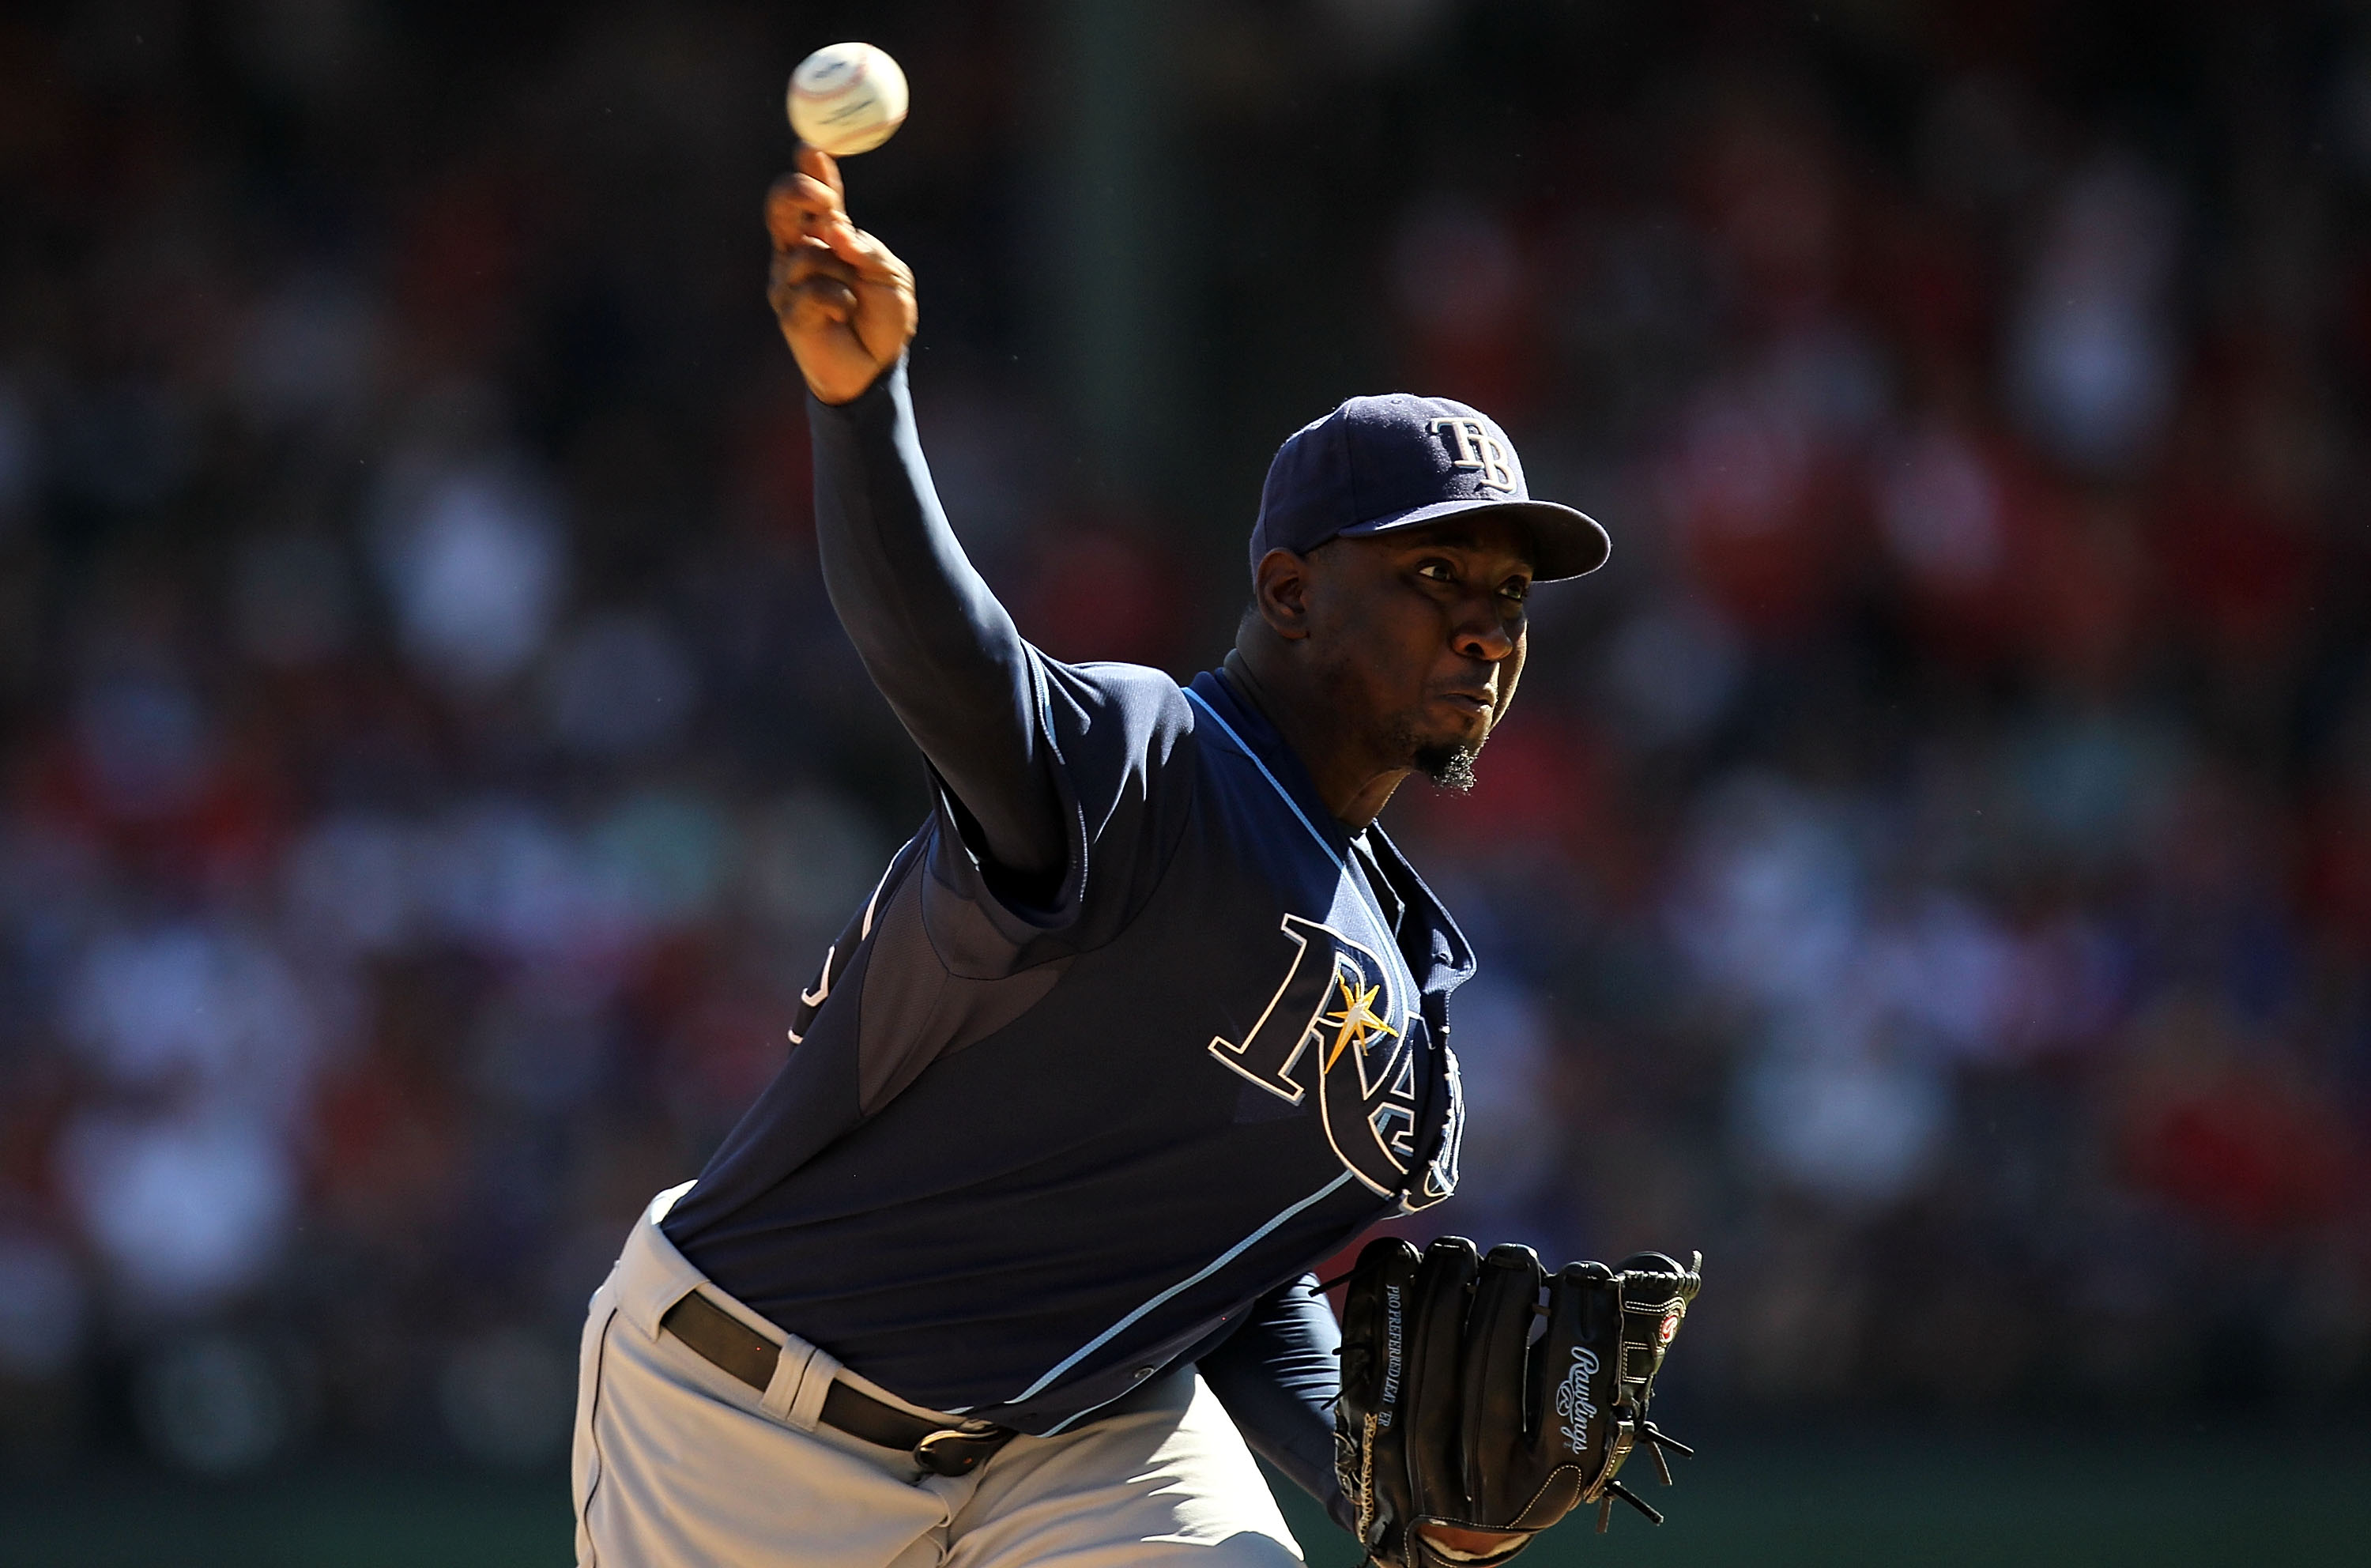 Soriano could be the best setup man the Yankees have had since Mariano Rivera.